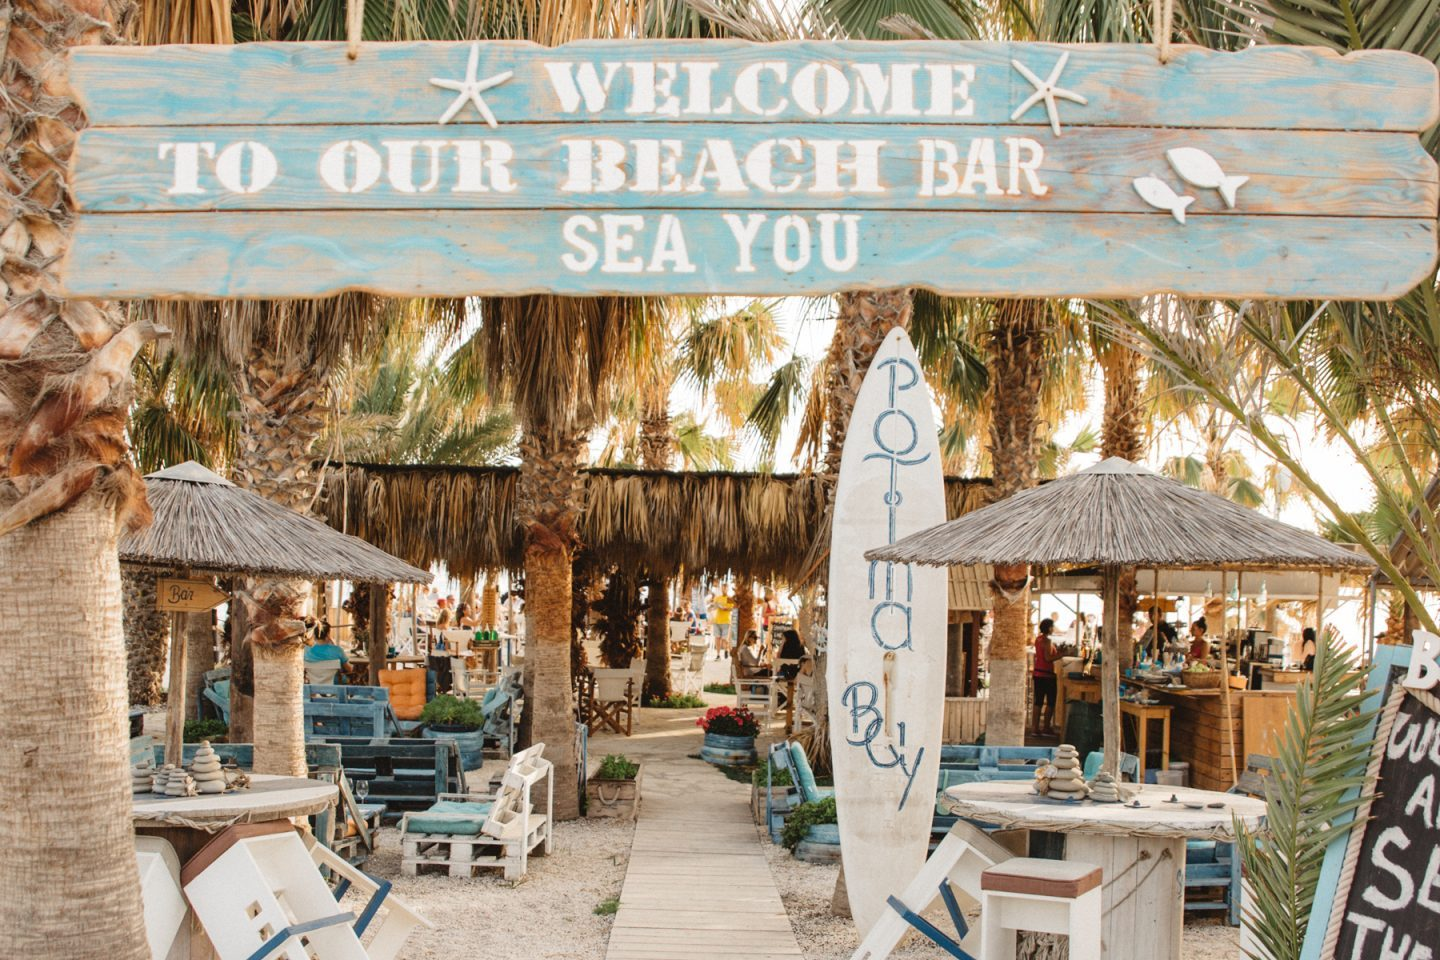 Sea You Beach Bar, Potima Bay – Paphos